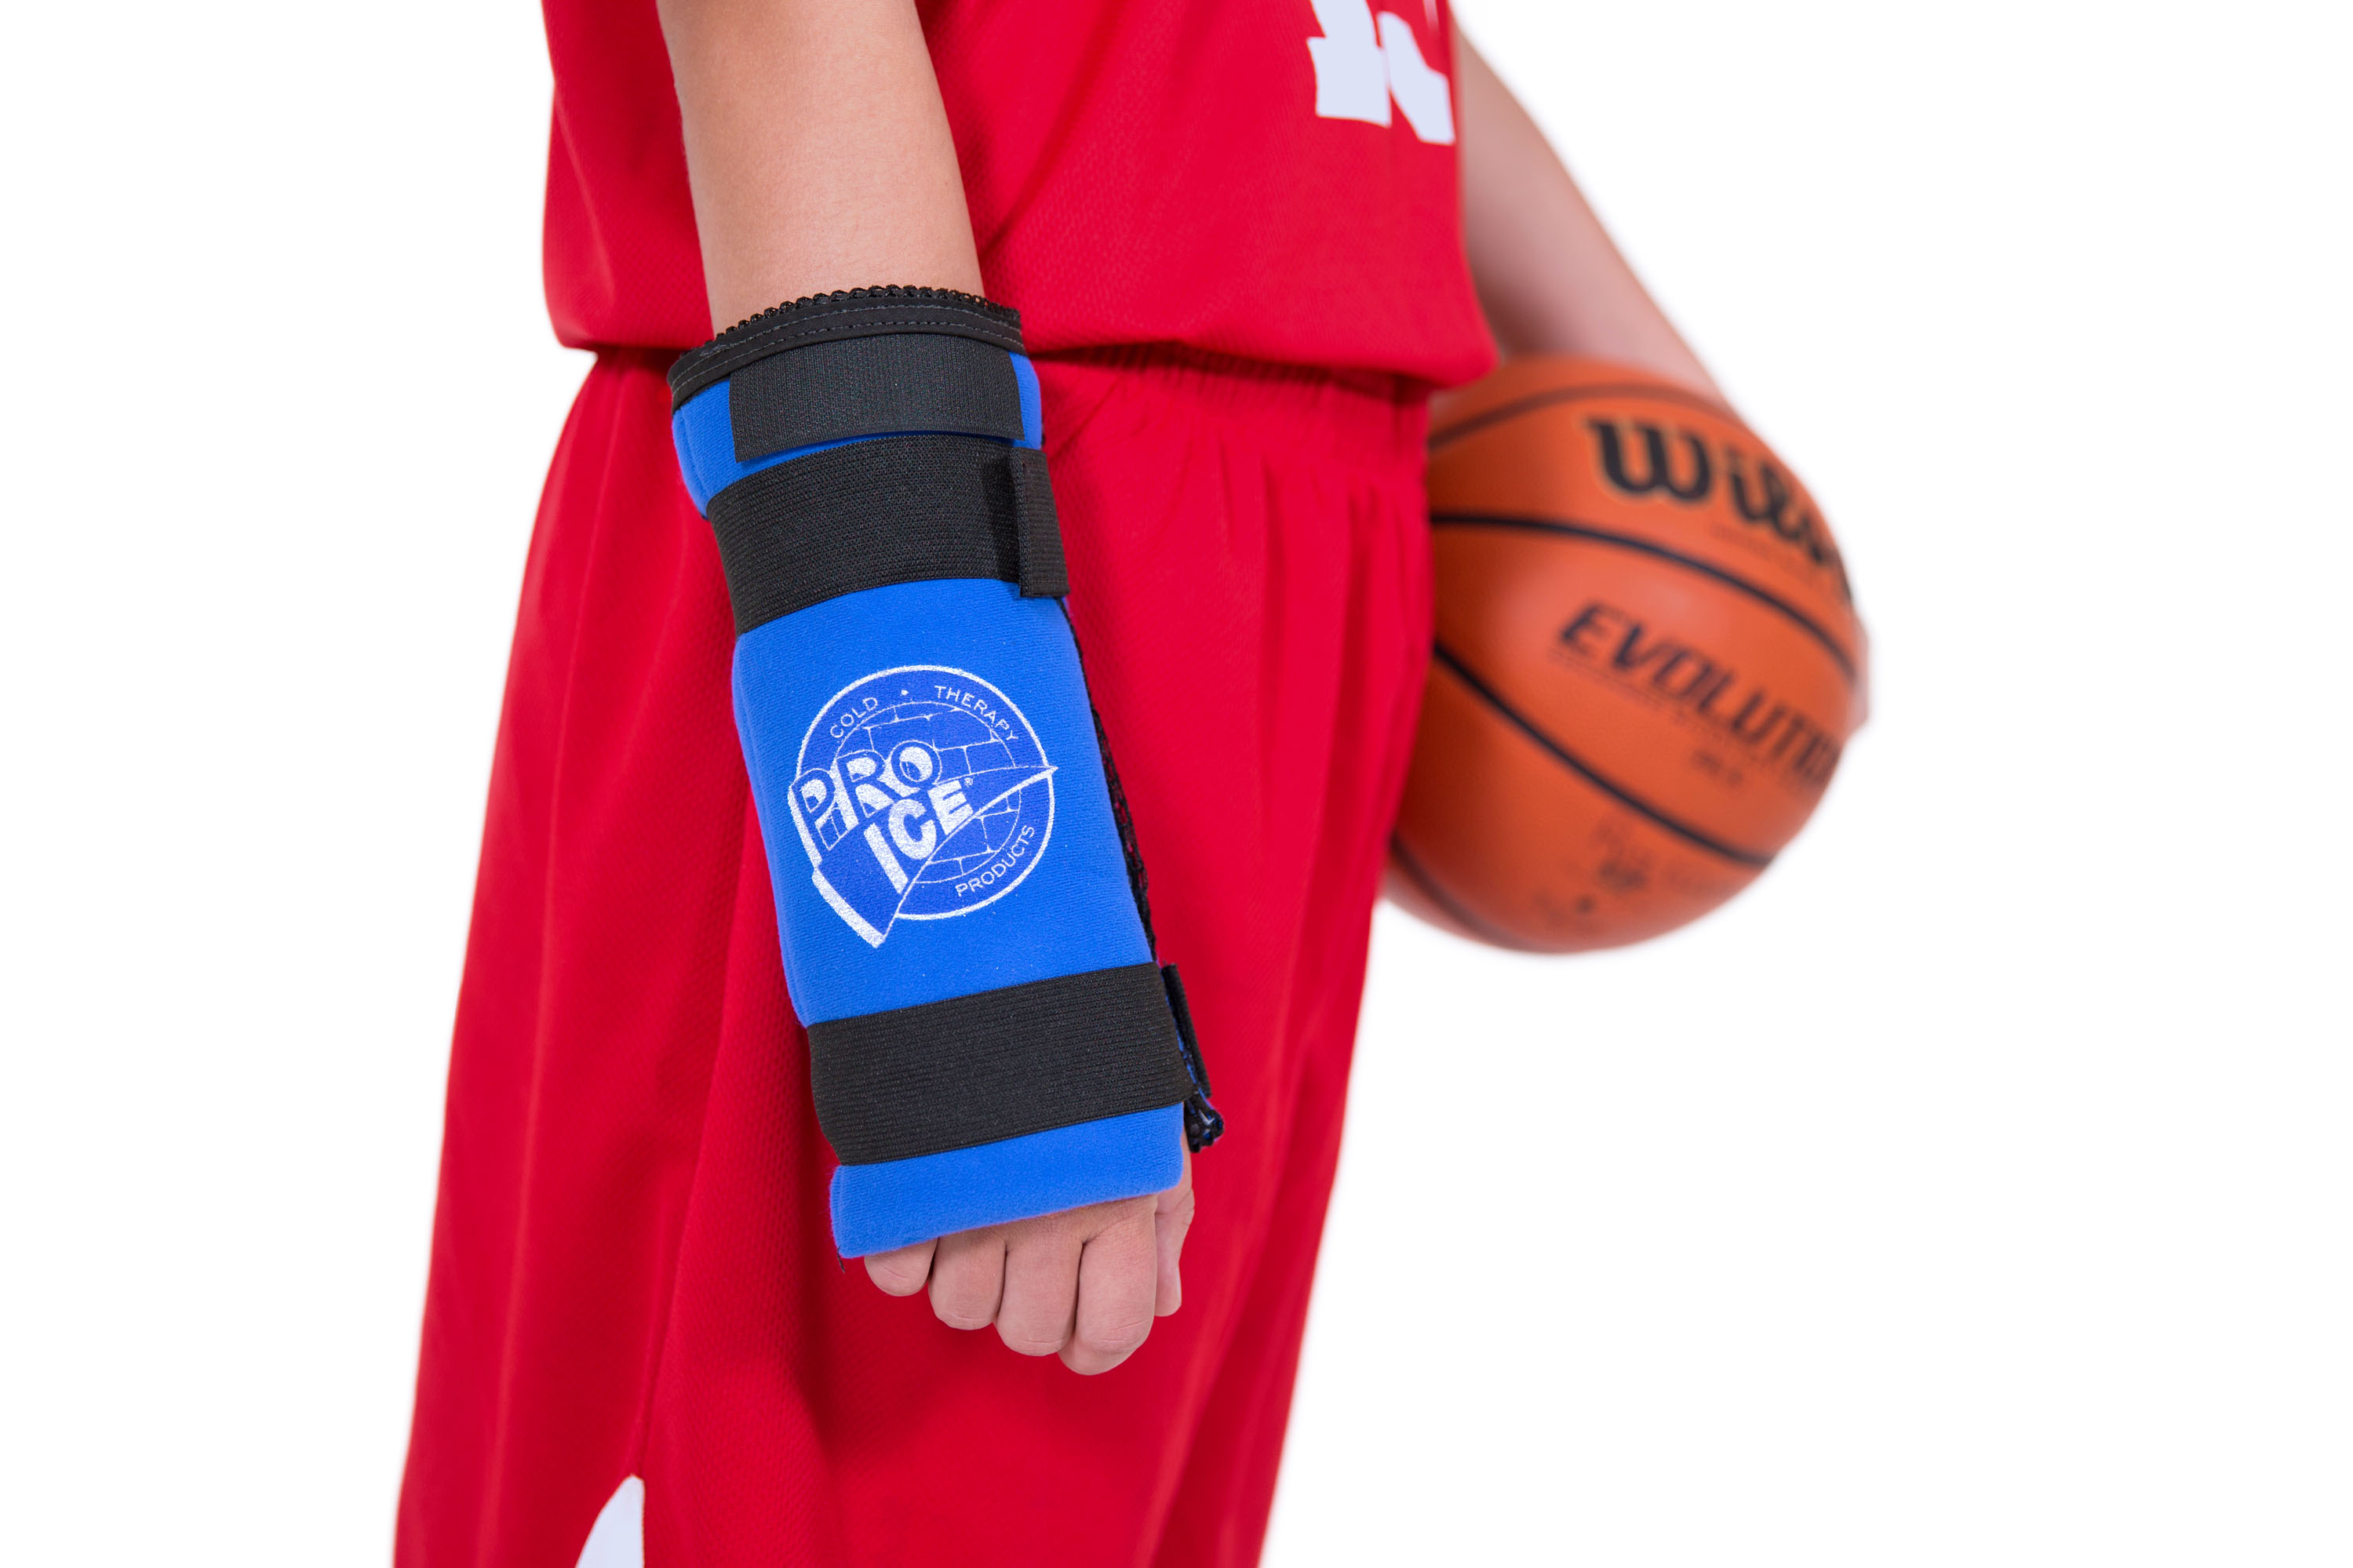 Wrist Compression Ice Wraps by Pro Ice Help Relieve Wrist Pain due to Wrist Sprain or Wrist Injury or Surgery